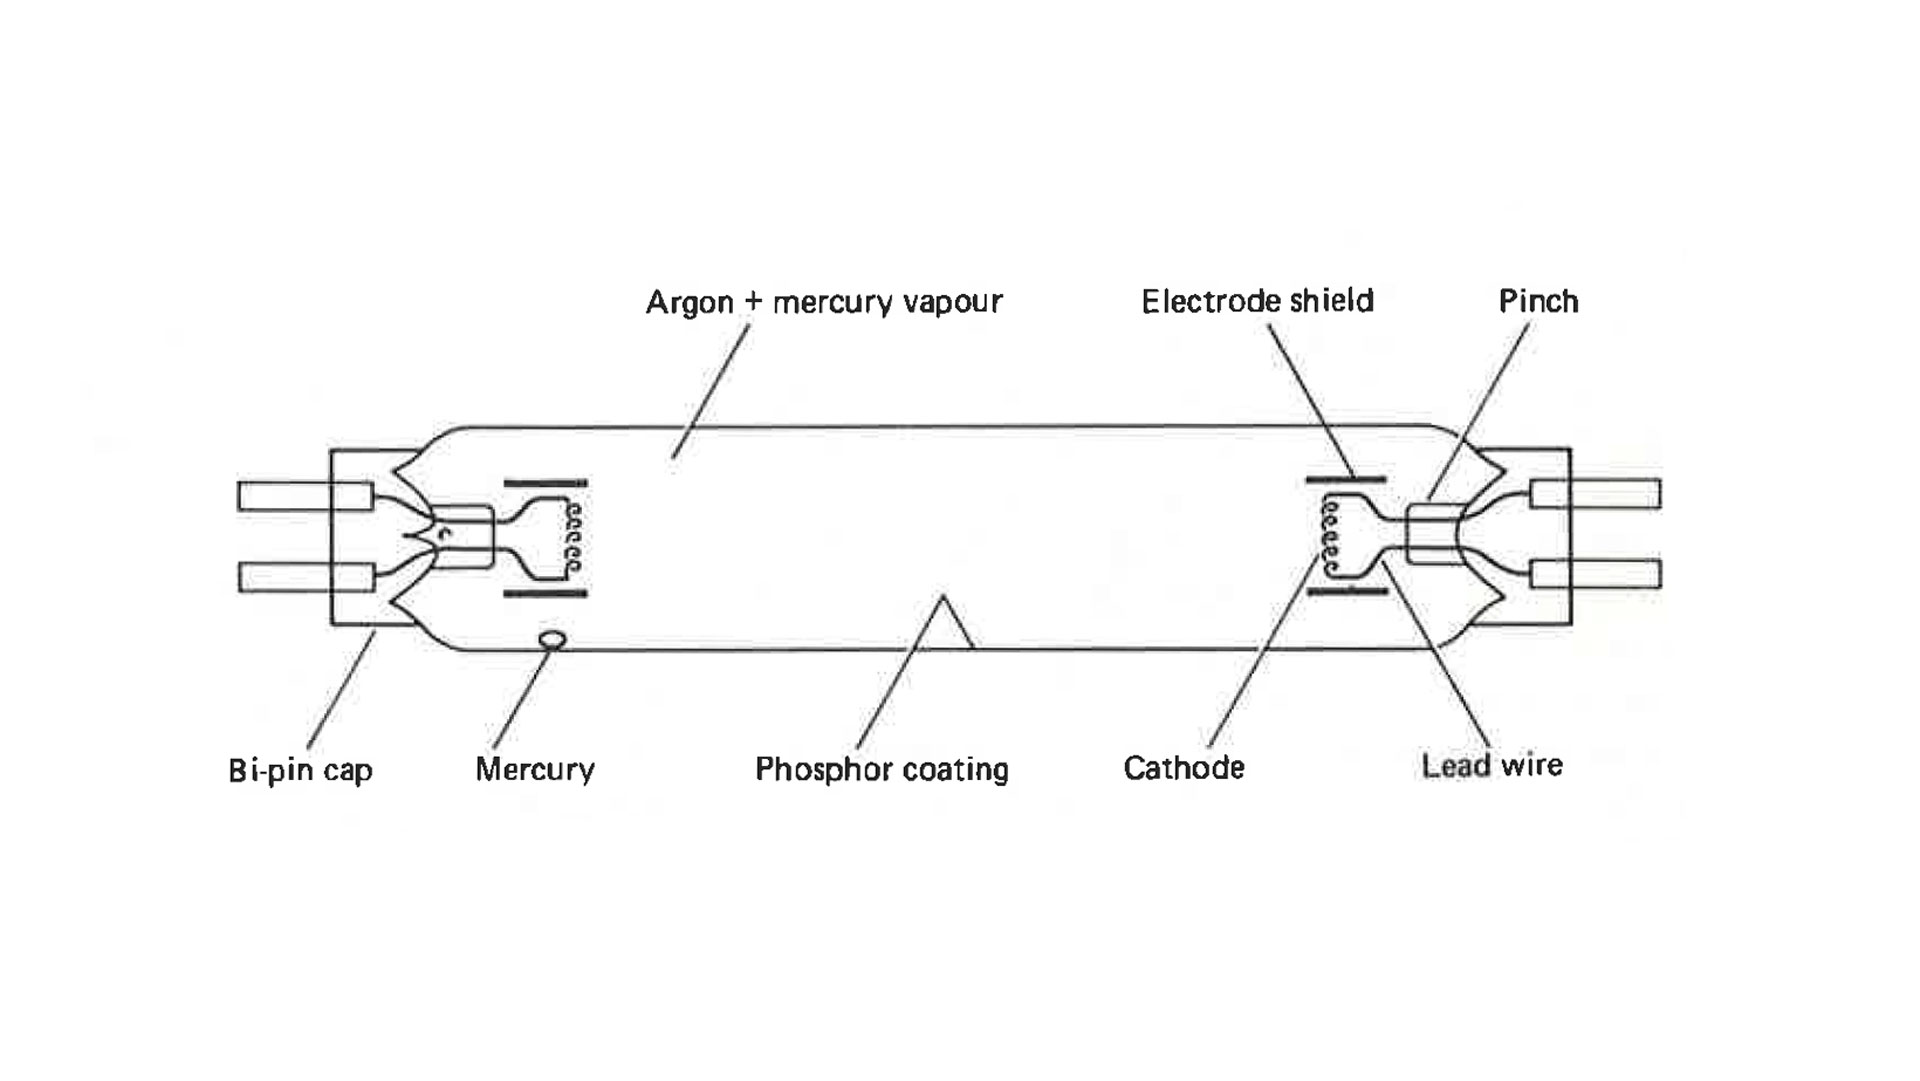 Photo Cell Wiring Diagram Mercury Vapor Just Another Smartcraft 200 2014 About Us Turnlights Rh Com 115 Diagrams